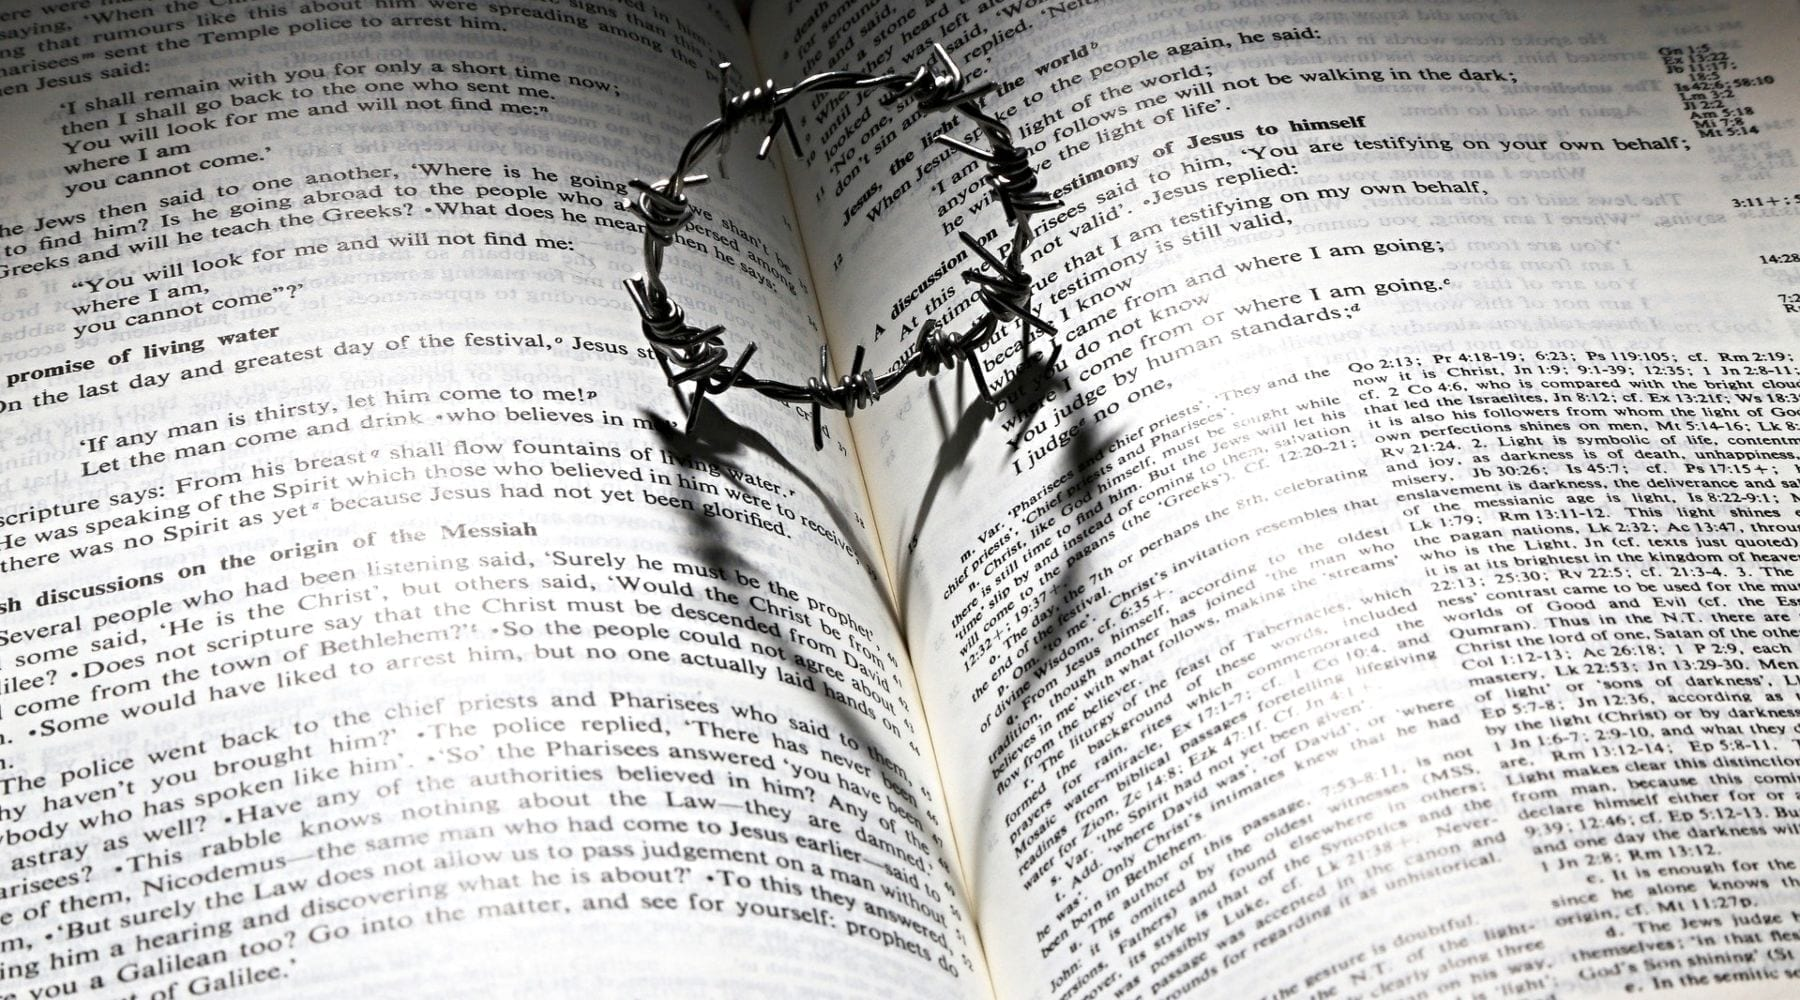 Crown of thorns casting heart shadow on Bible pages